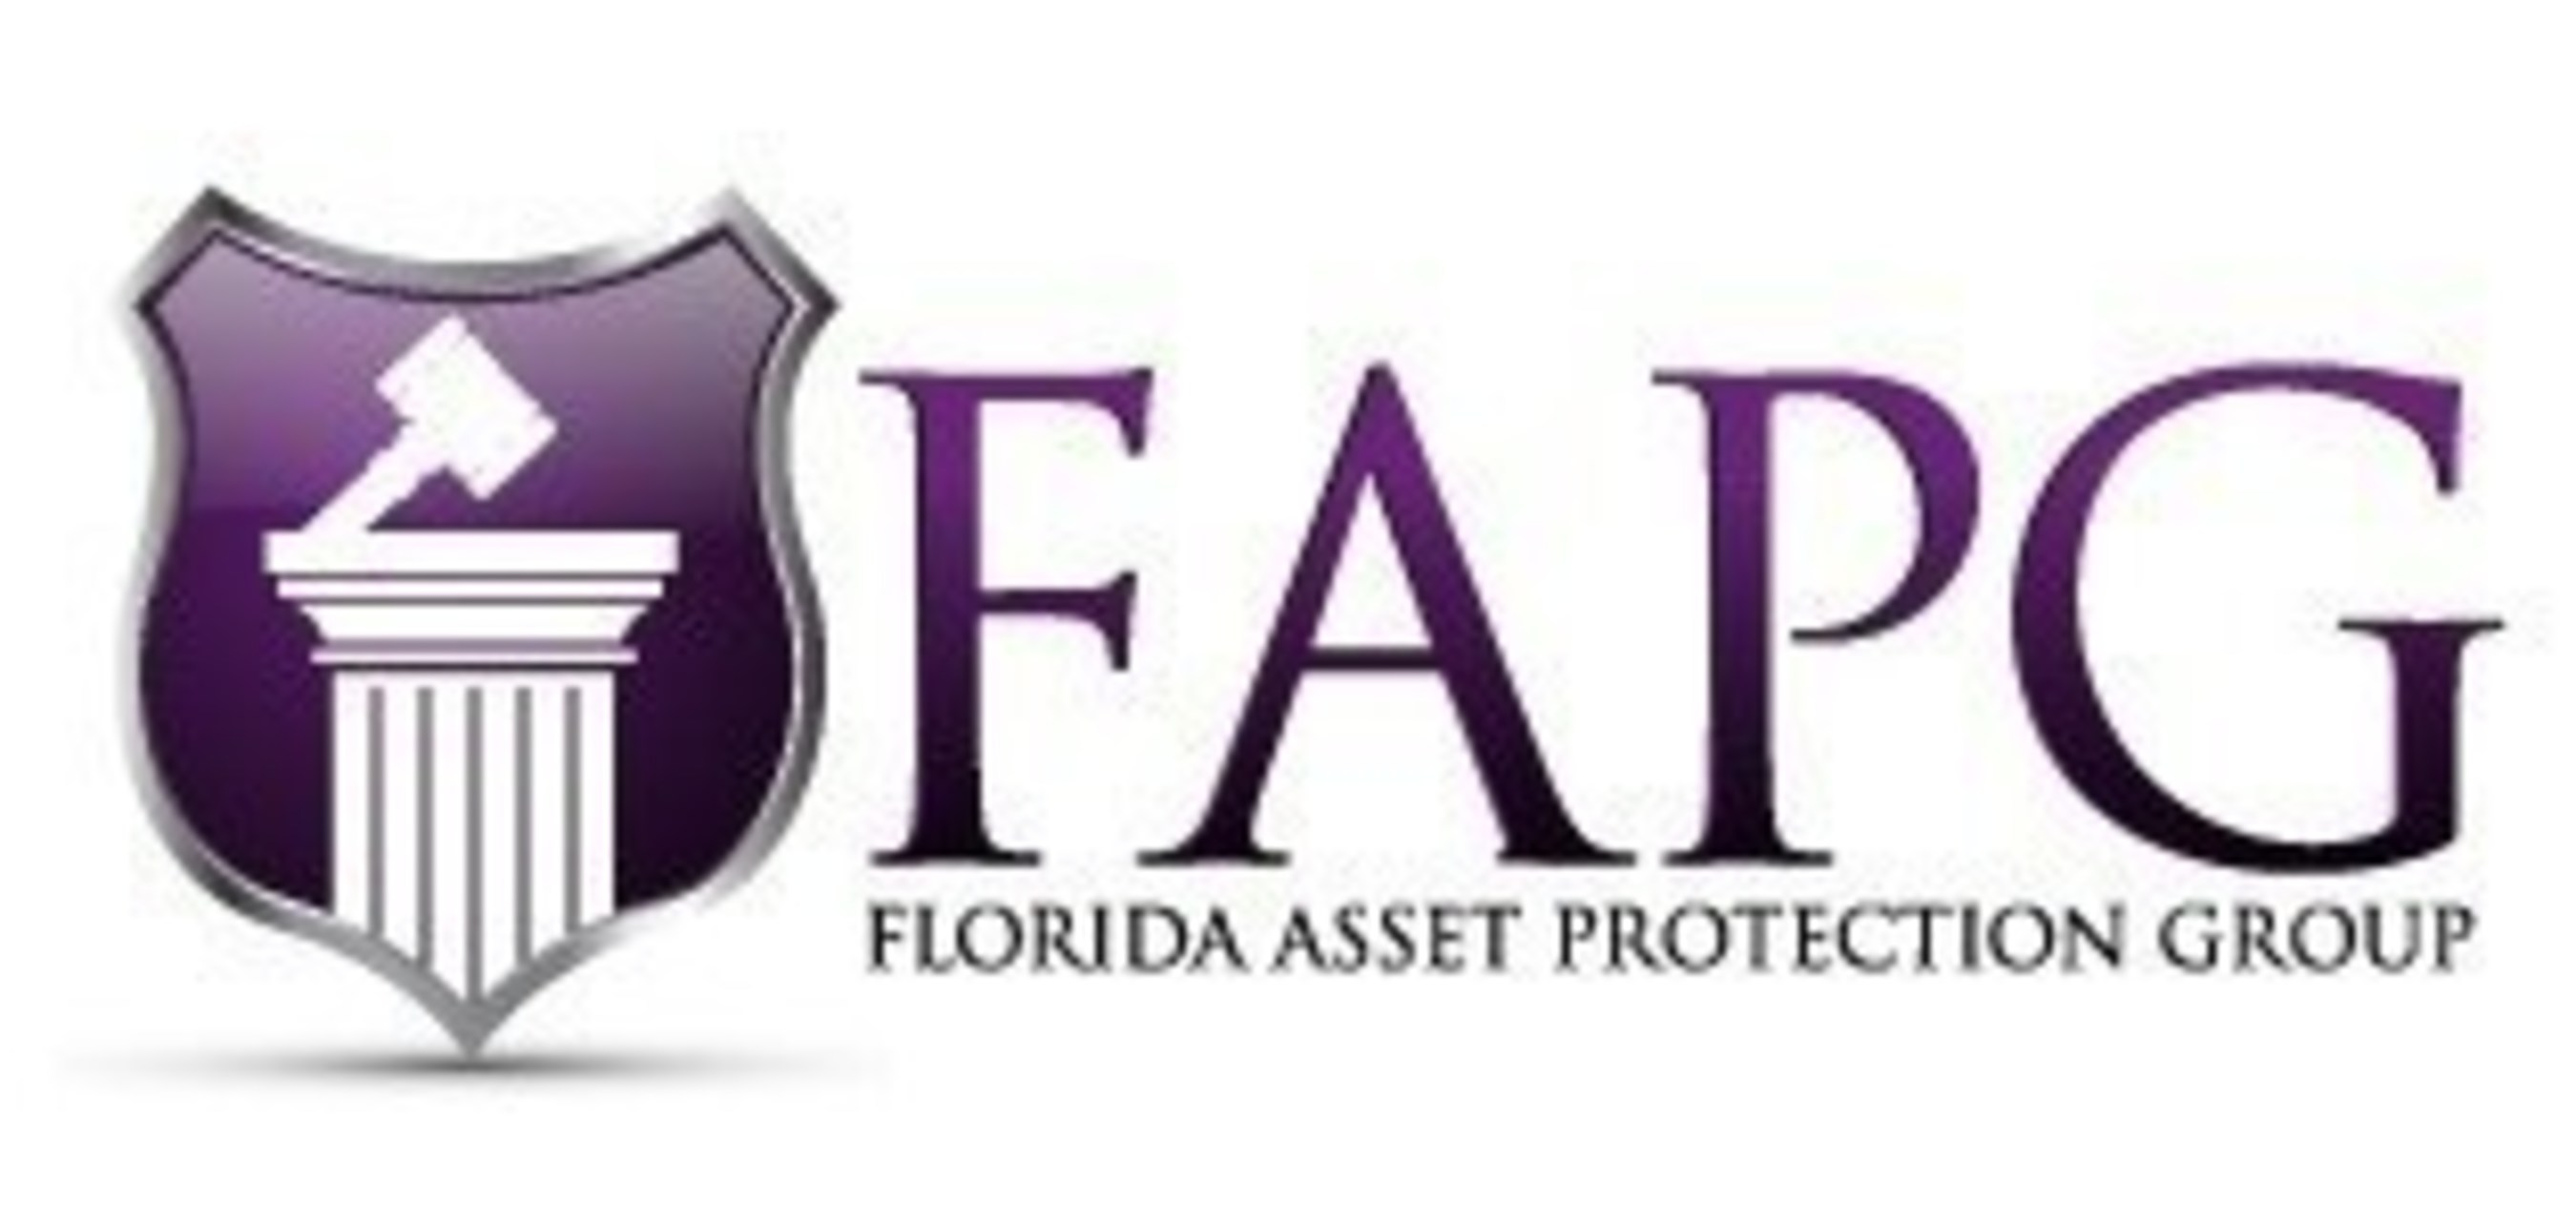 Florida Homeowners Can Rest Assured That the Team at Florida Asset Protection Group is Ready to Protect Them